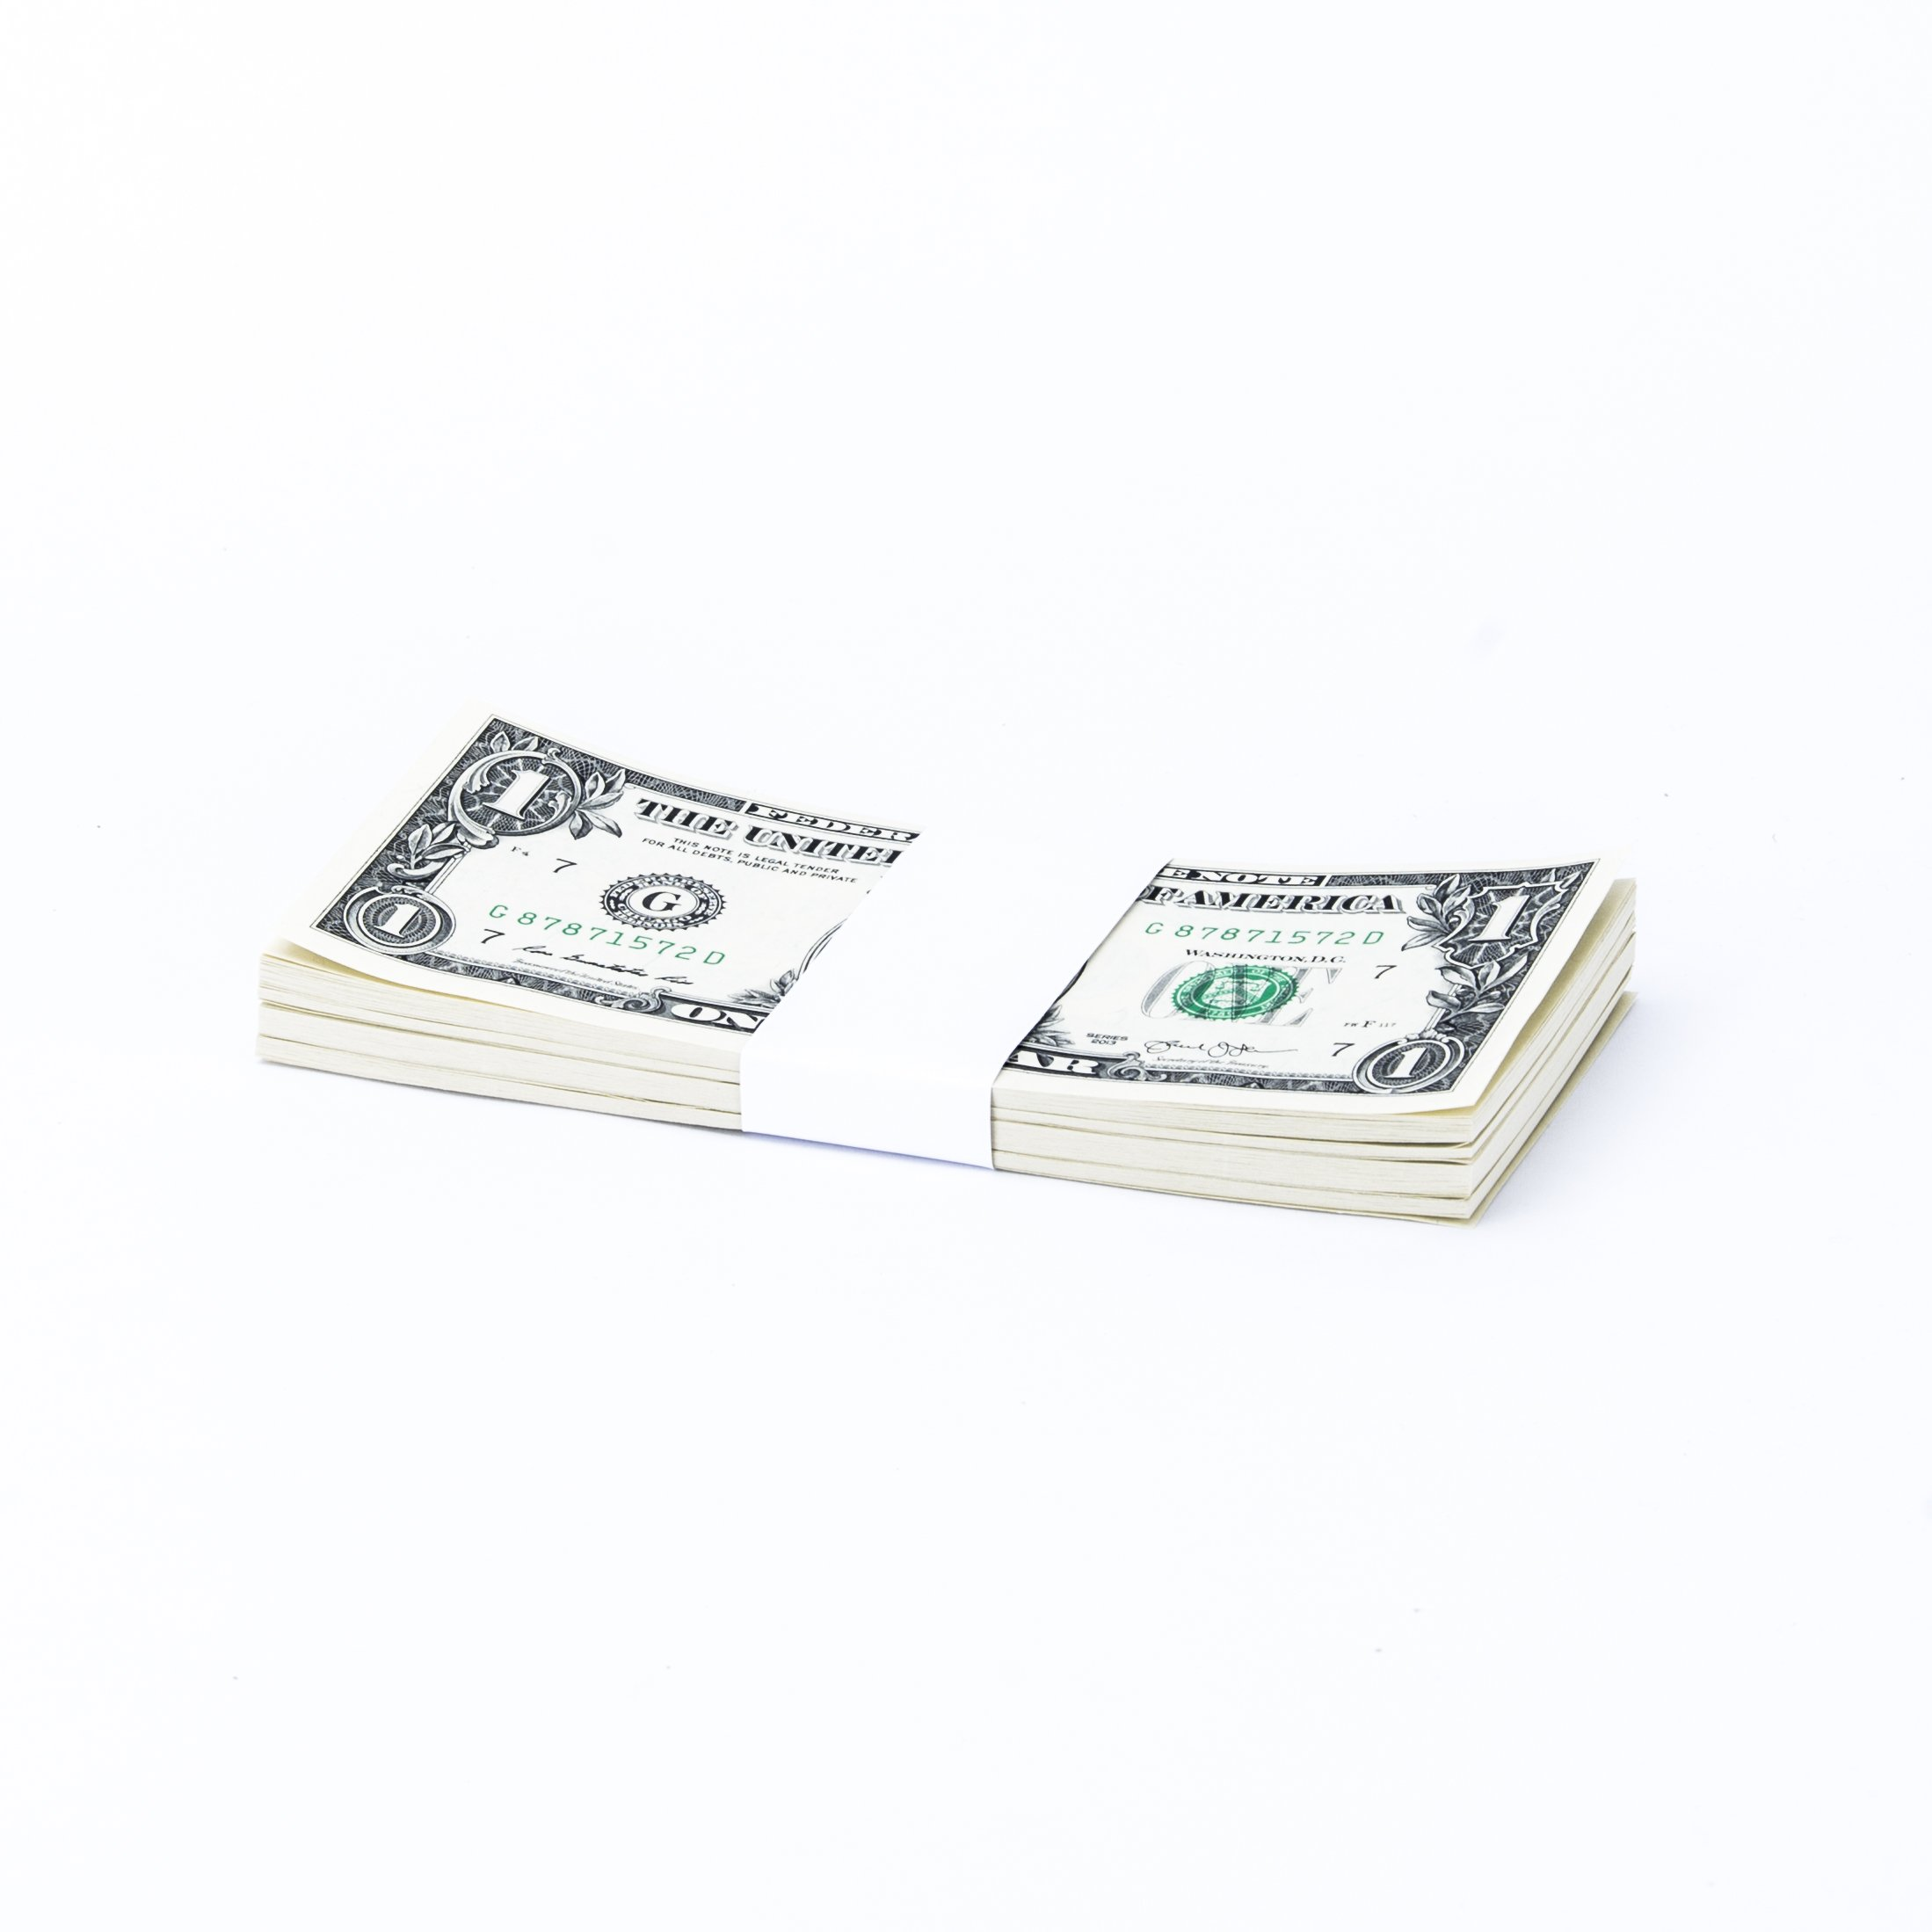 White No Denomination Currency Band Bundles (5,000 Bands) by Carousel Checks Inc. (Image #1)